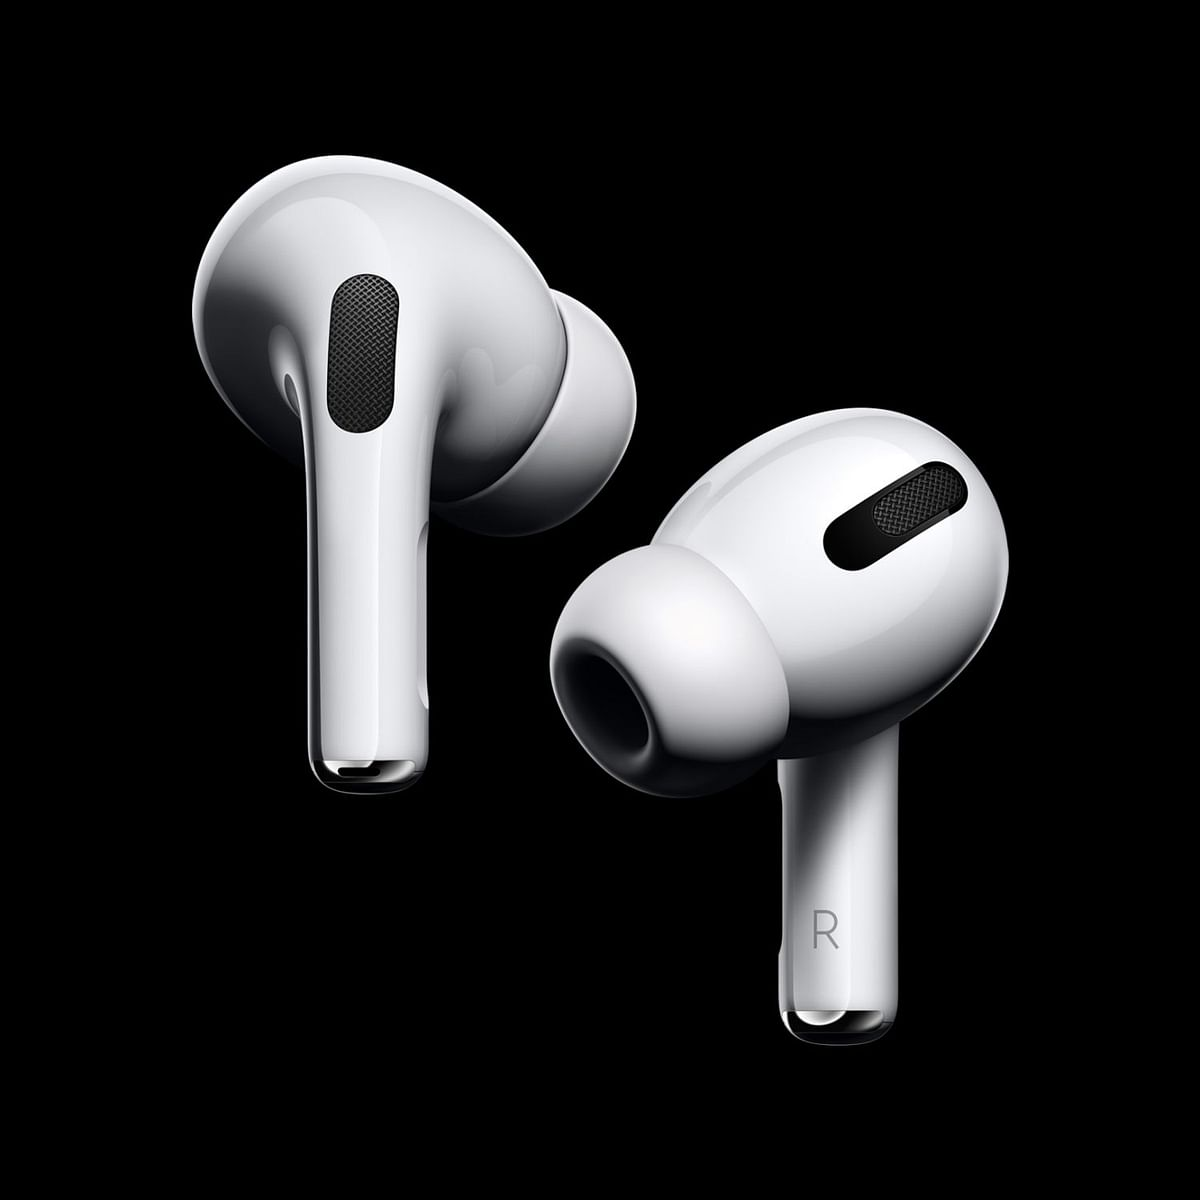 Apple: AirPods 3 in Pro design set to launch in 2021